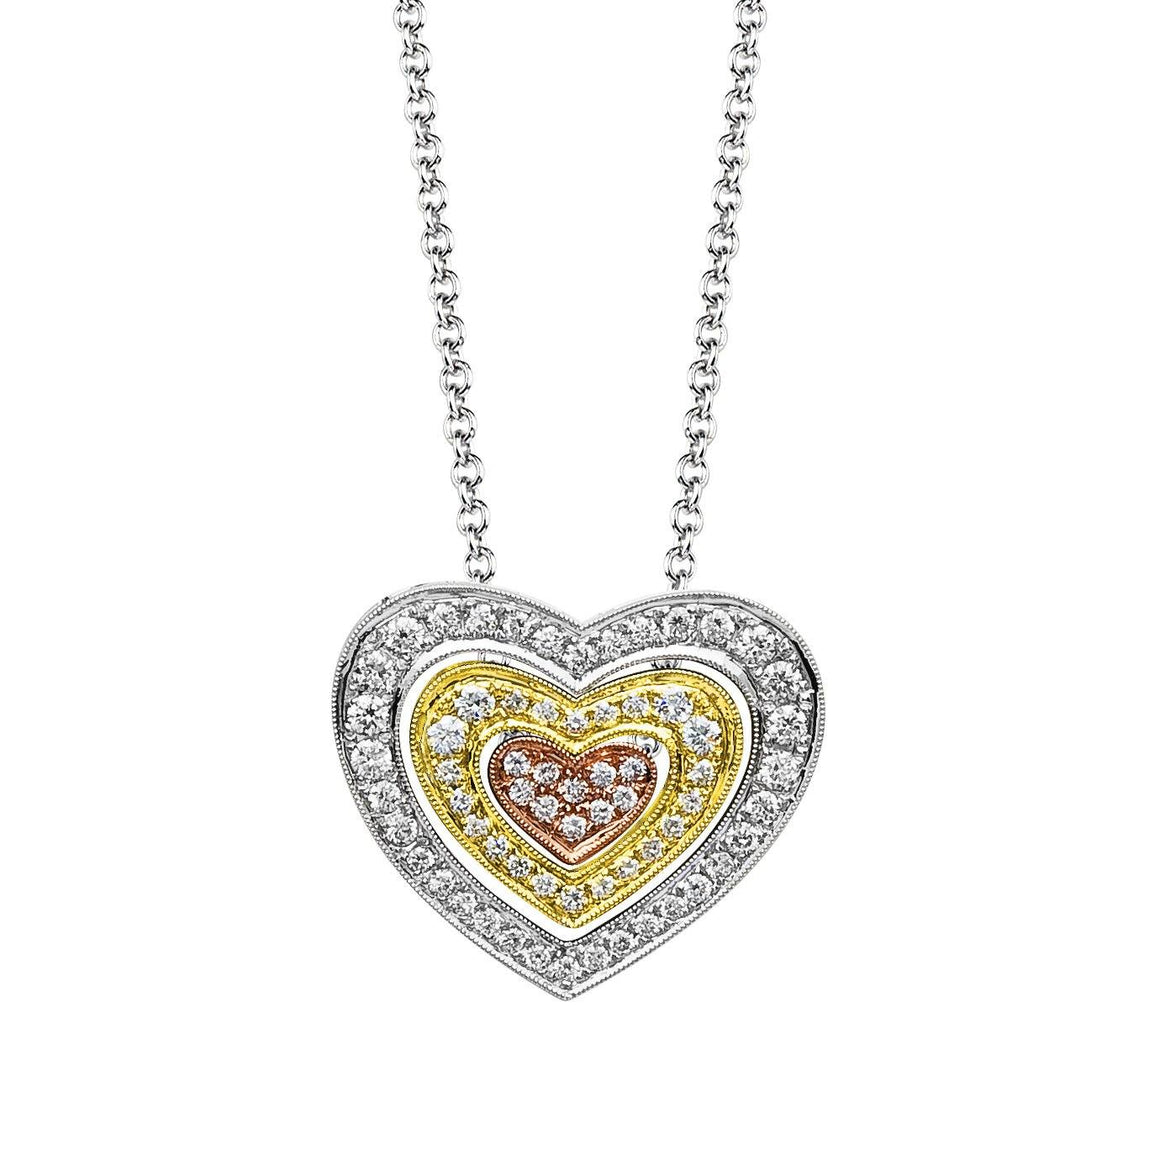 Simon G - LP3743, Women's Necklace, Simon G - Birmingham Jewelry